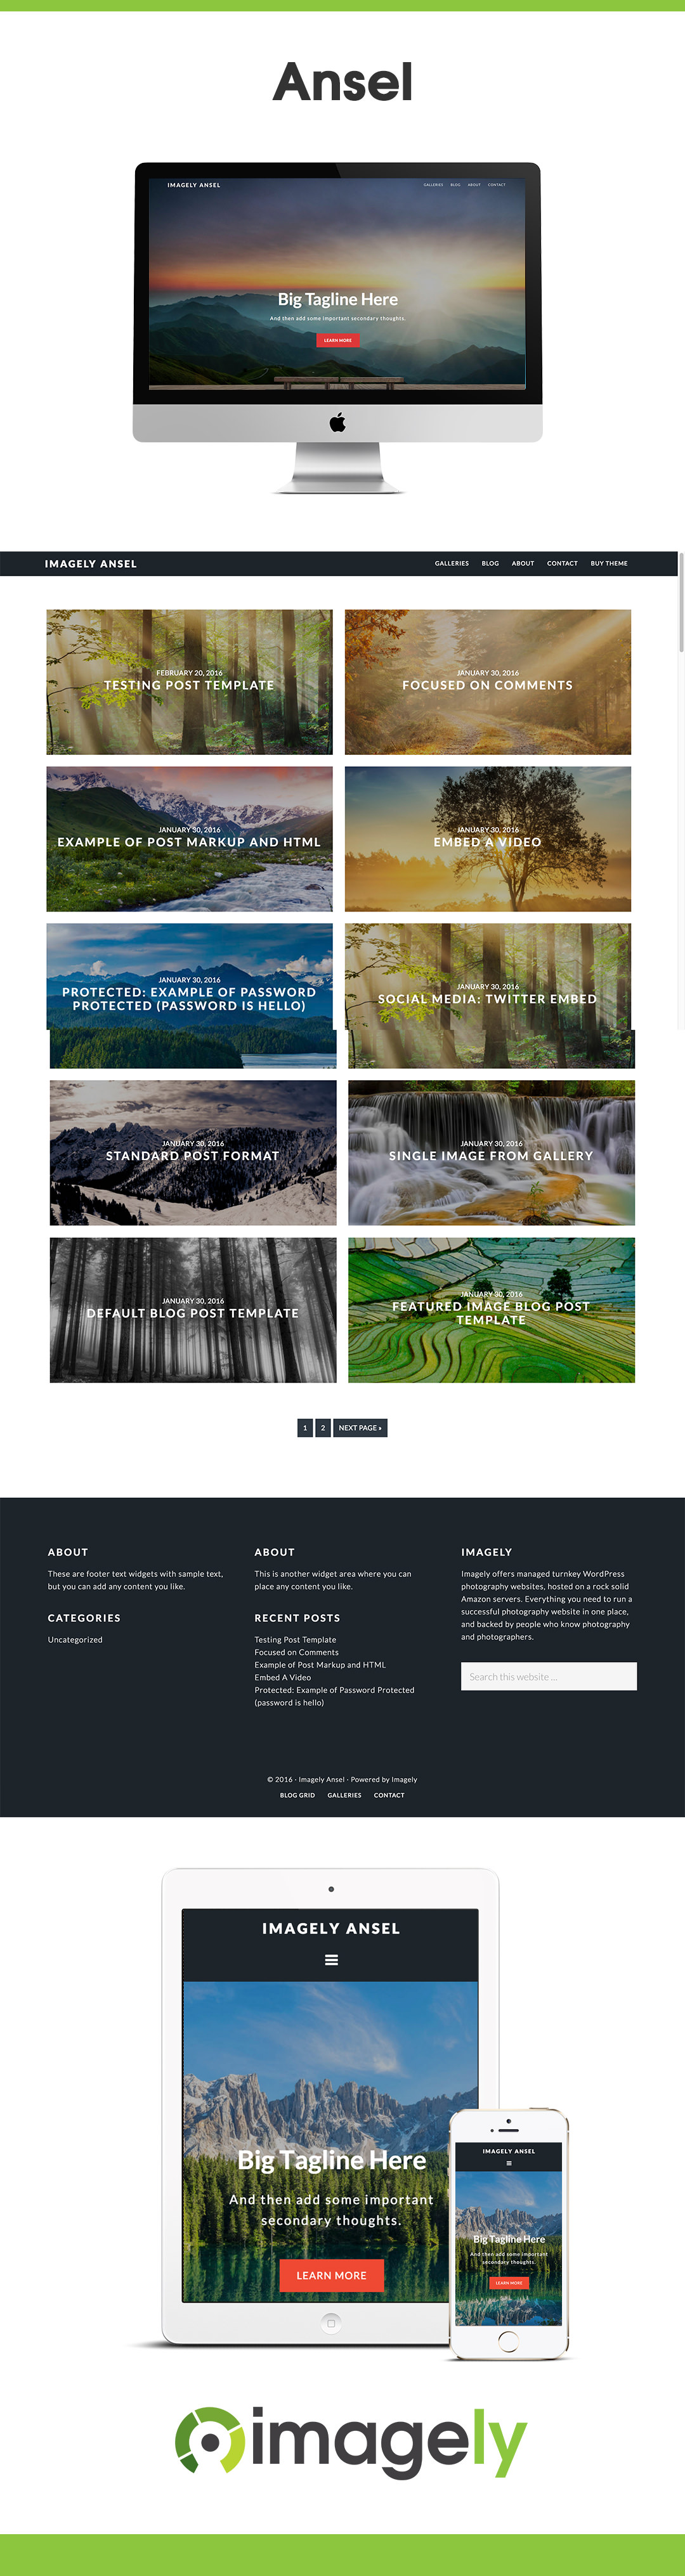 Ansel - Photography Theme for WordPress | Photography themes, Ansel ...